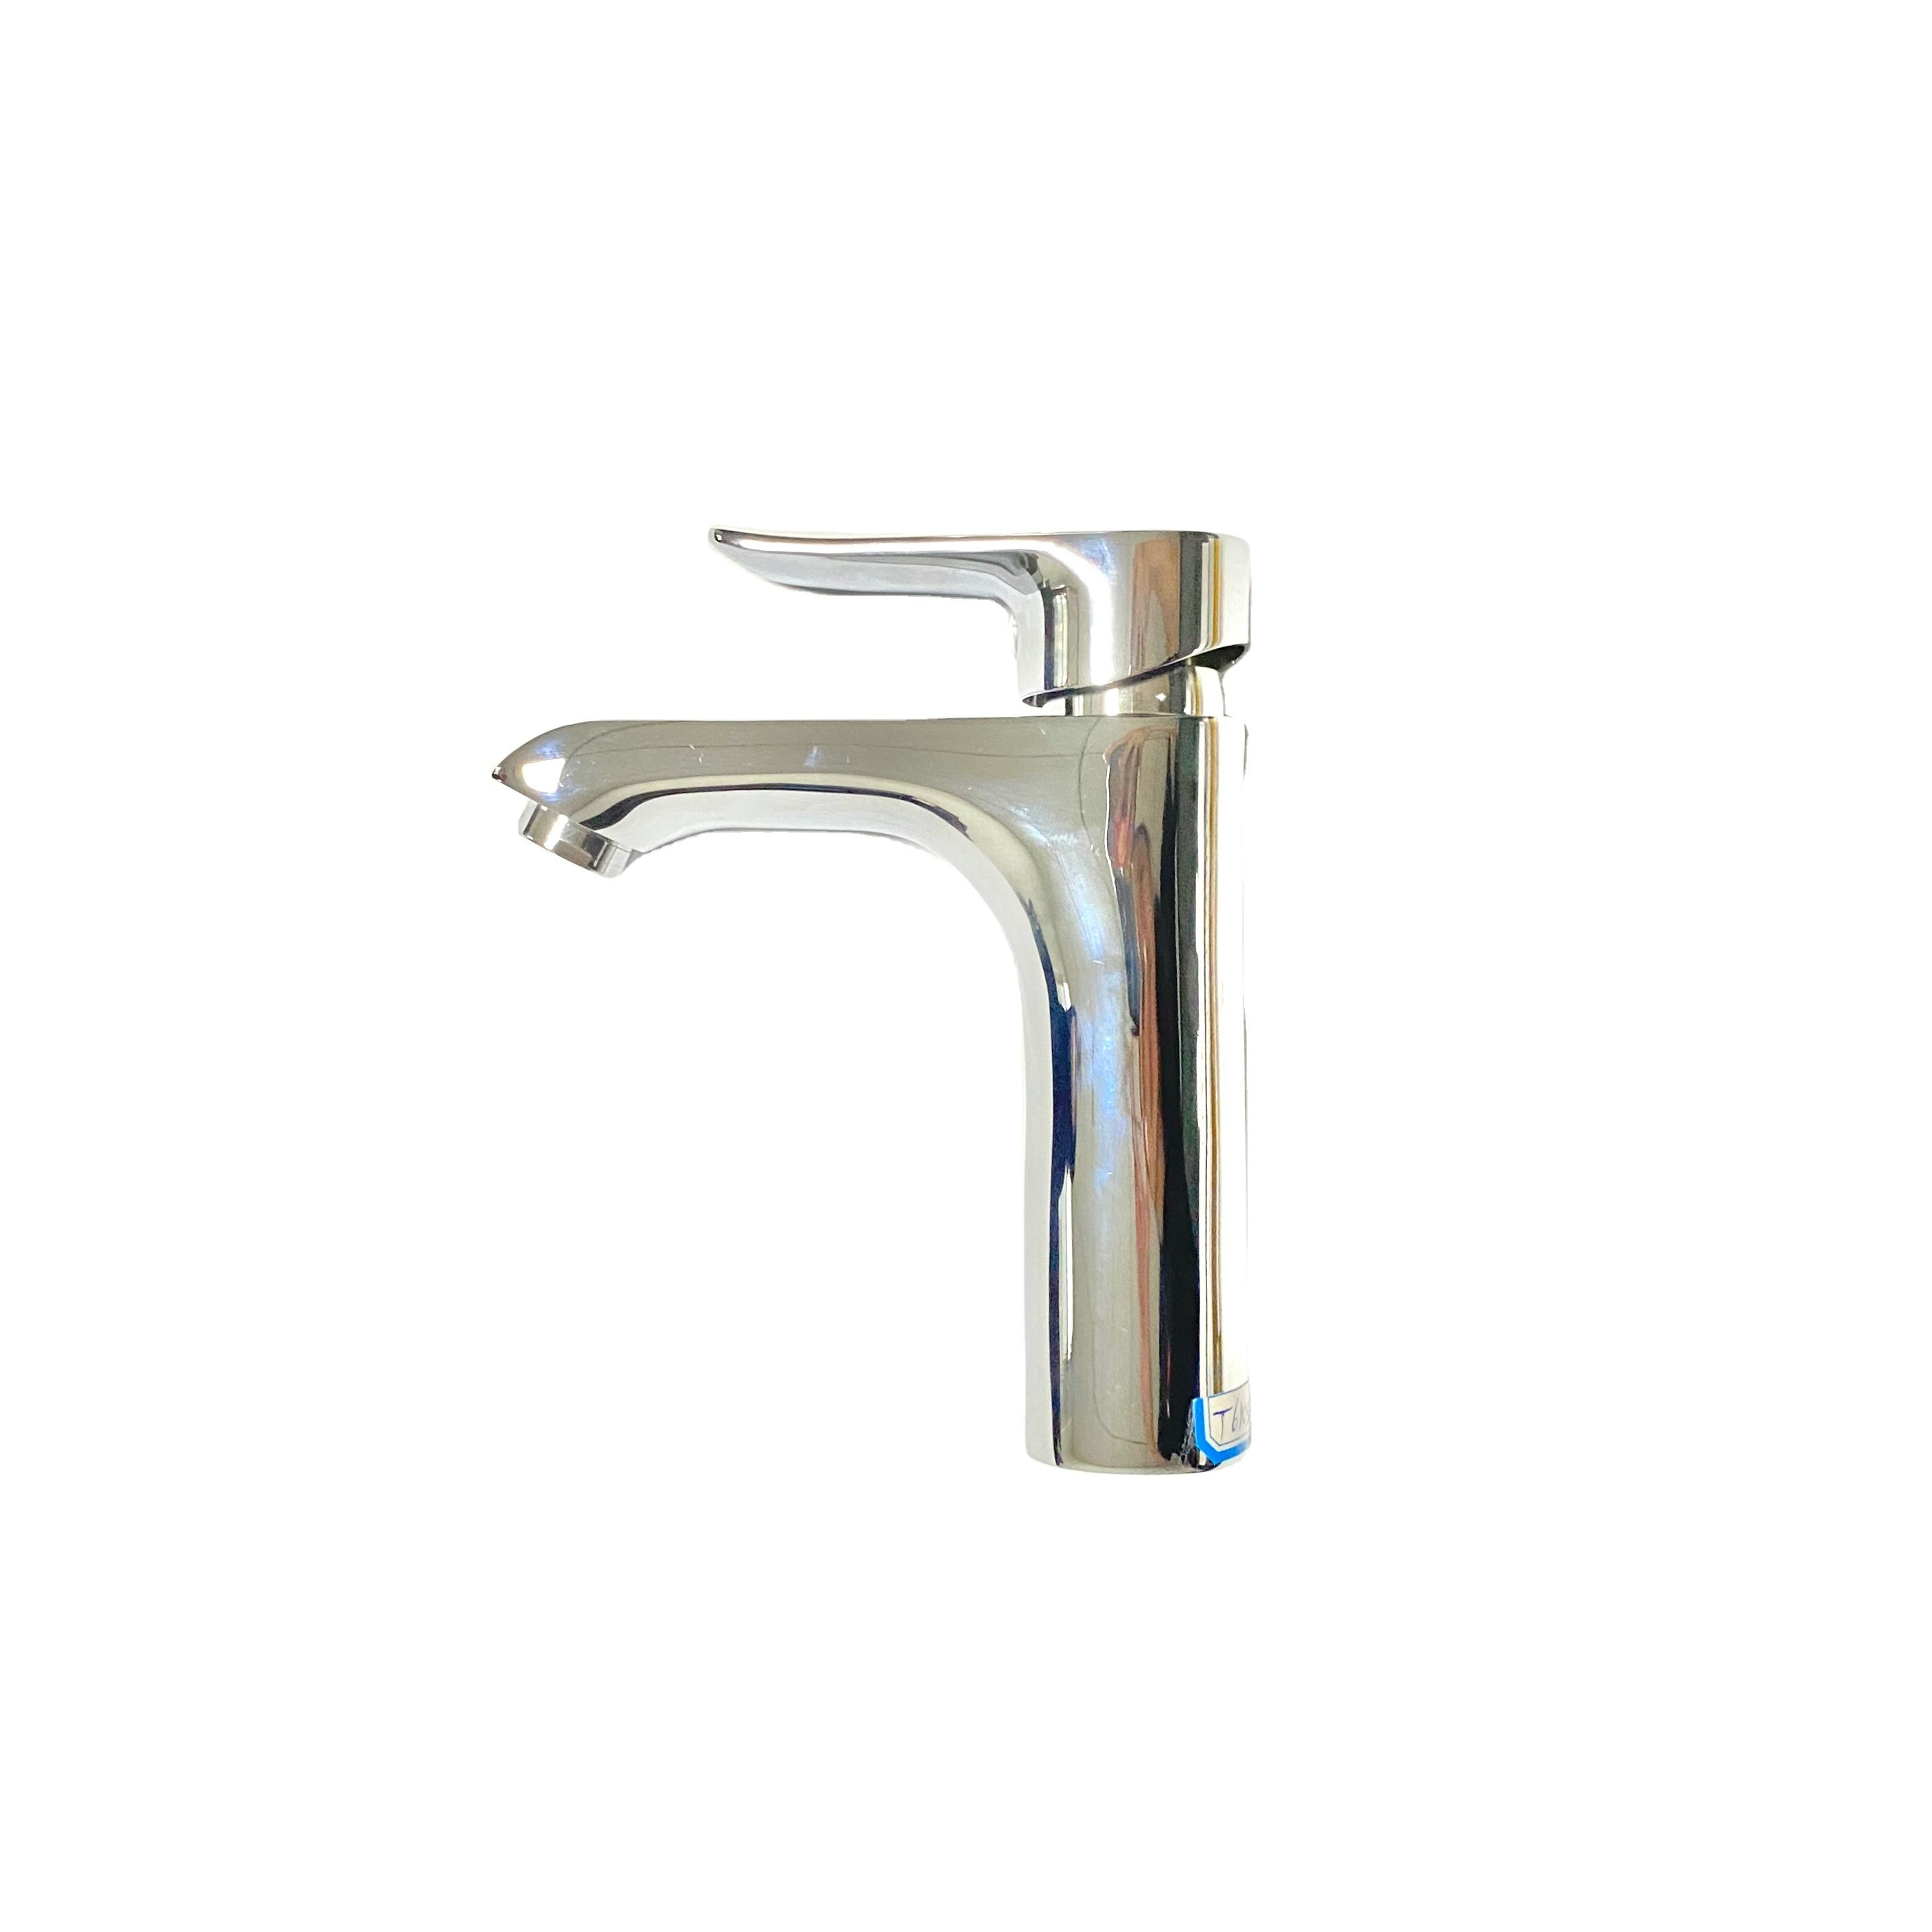 Bathroom All copper Basin Mixer Hot and Cold Mixer Faucet Brass Sink Tap with Ceramic Valve Core